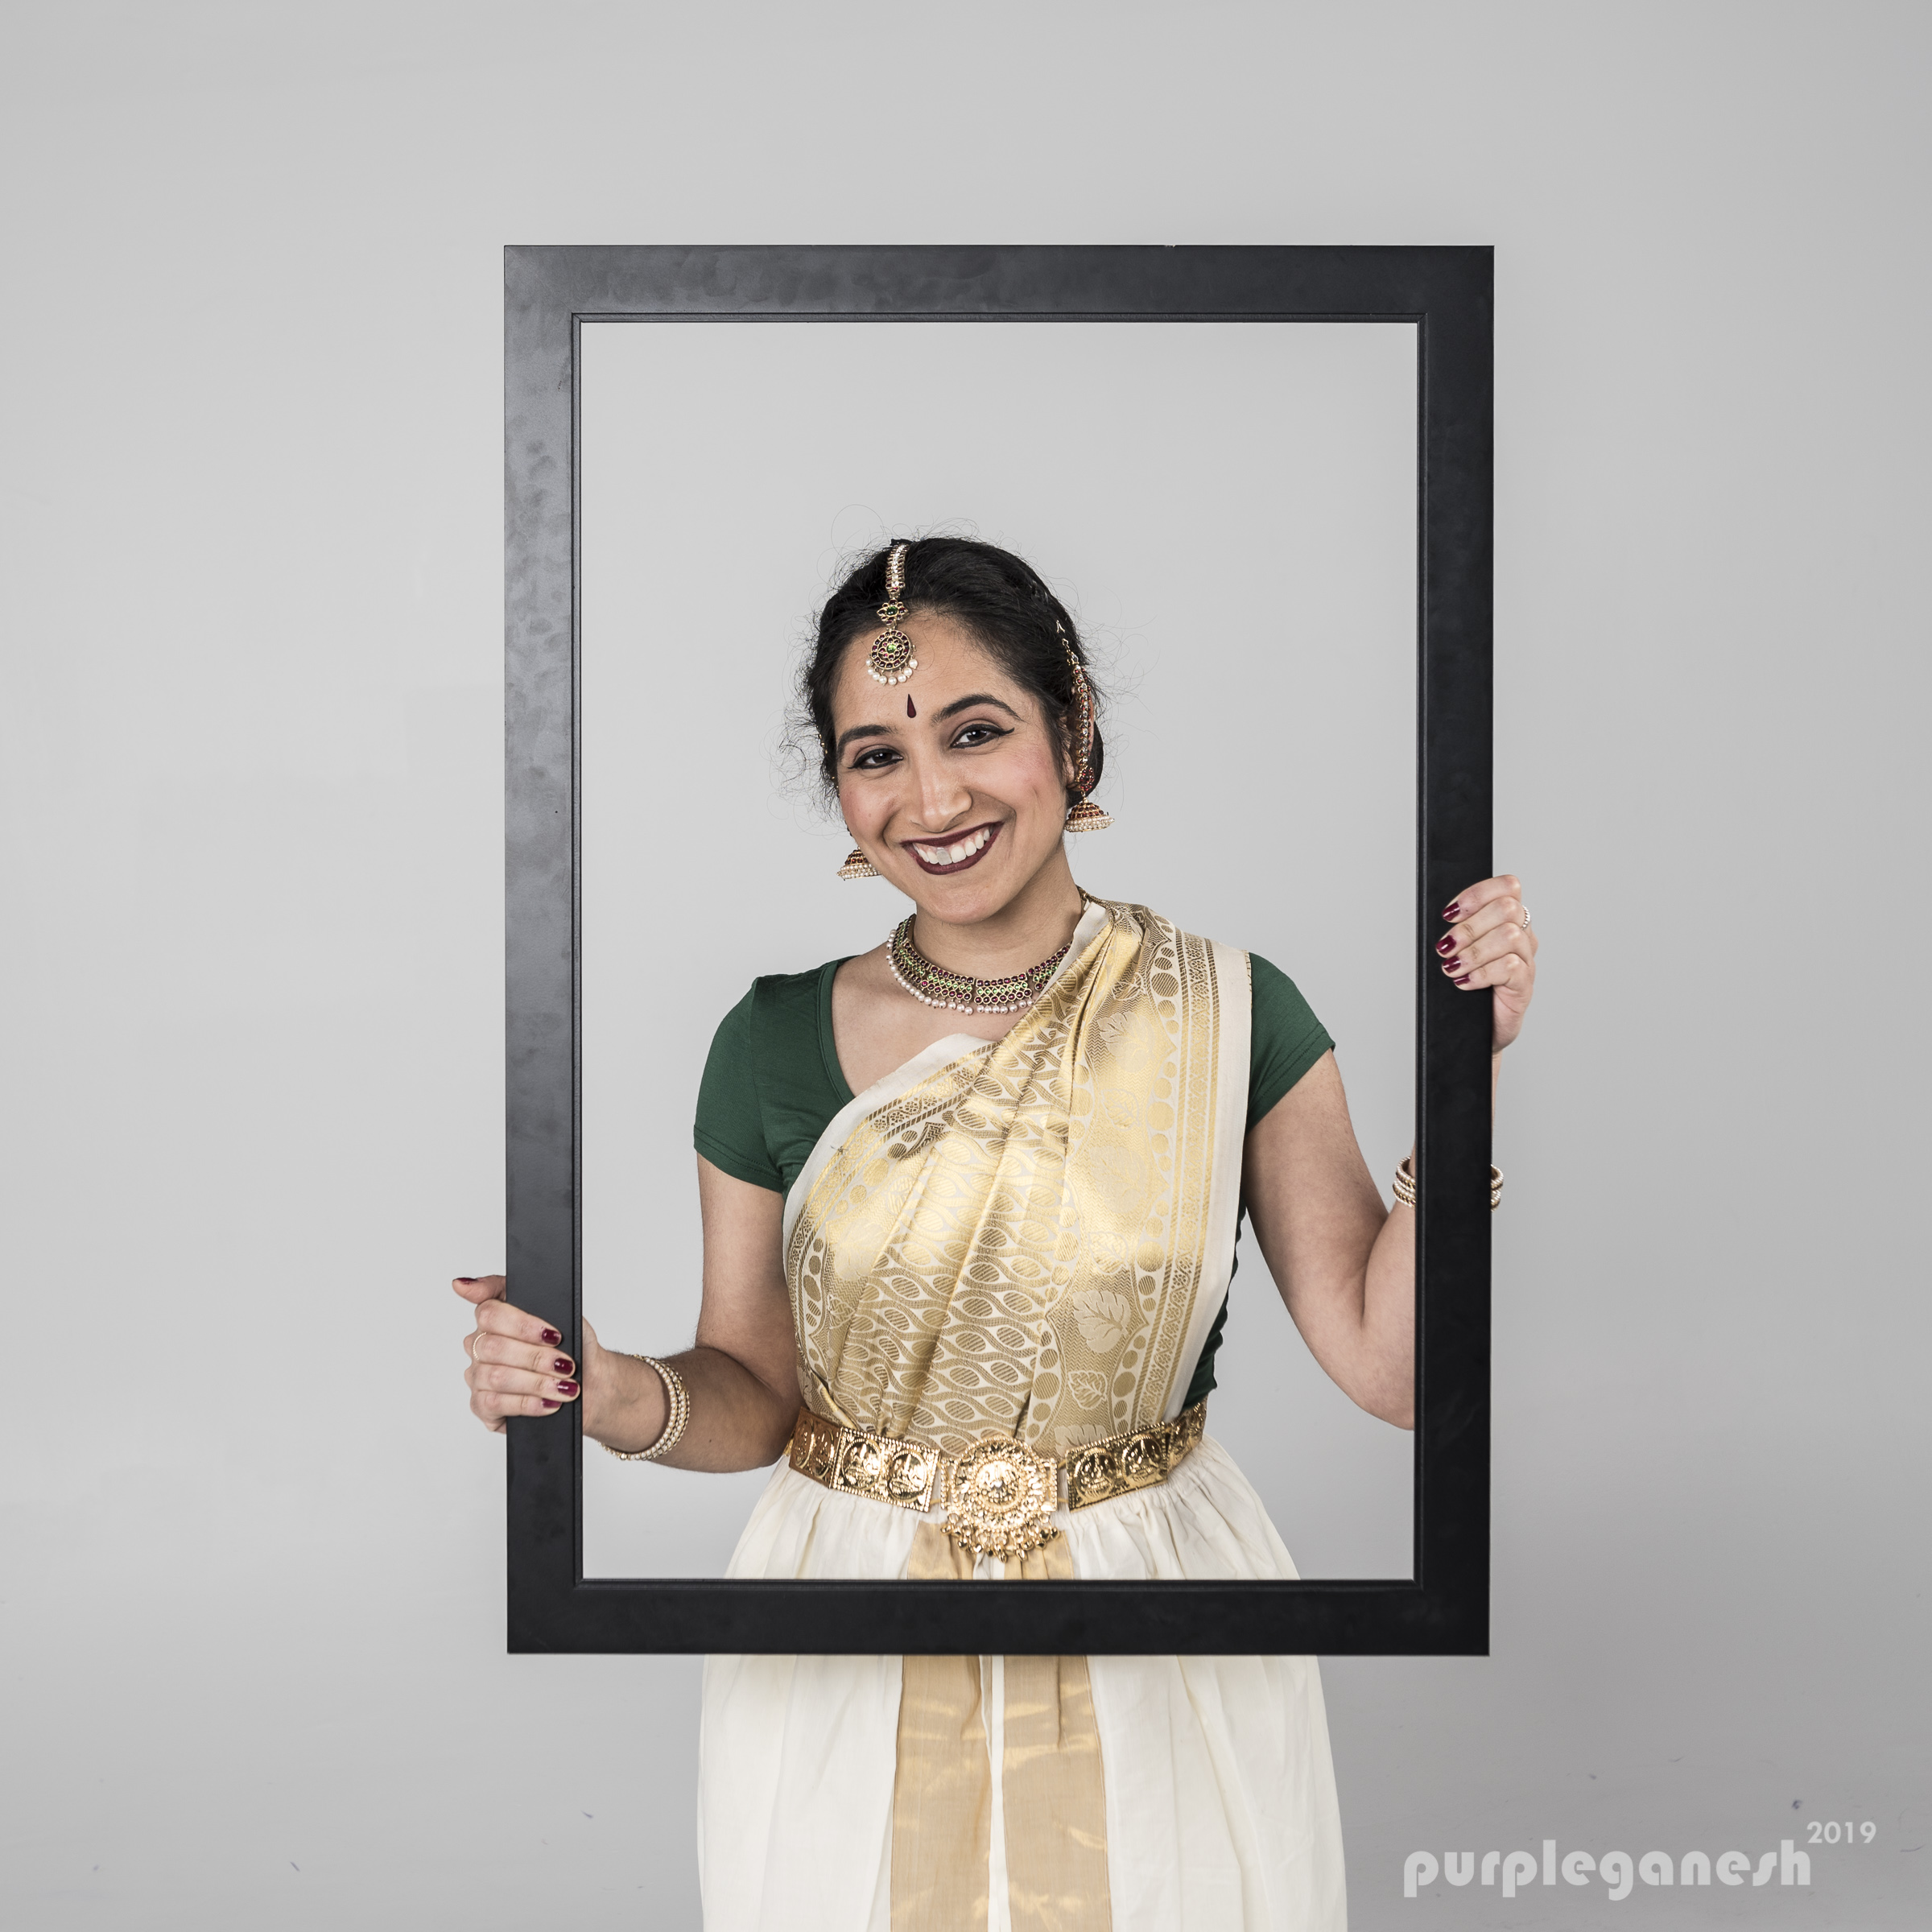 Divya Satishchandra - has been learning and performing Bharatnatyam for the last 17 years—with some breaks in between. She is a student of Smt. Sridevi Ajai Thirumalai and the Natyamani School of Dance, and joined the NATyA Dance Collective in 2017.